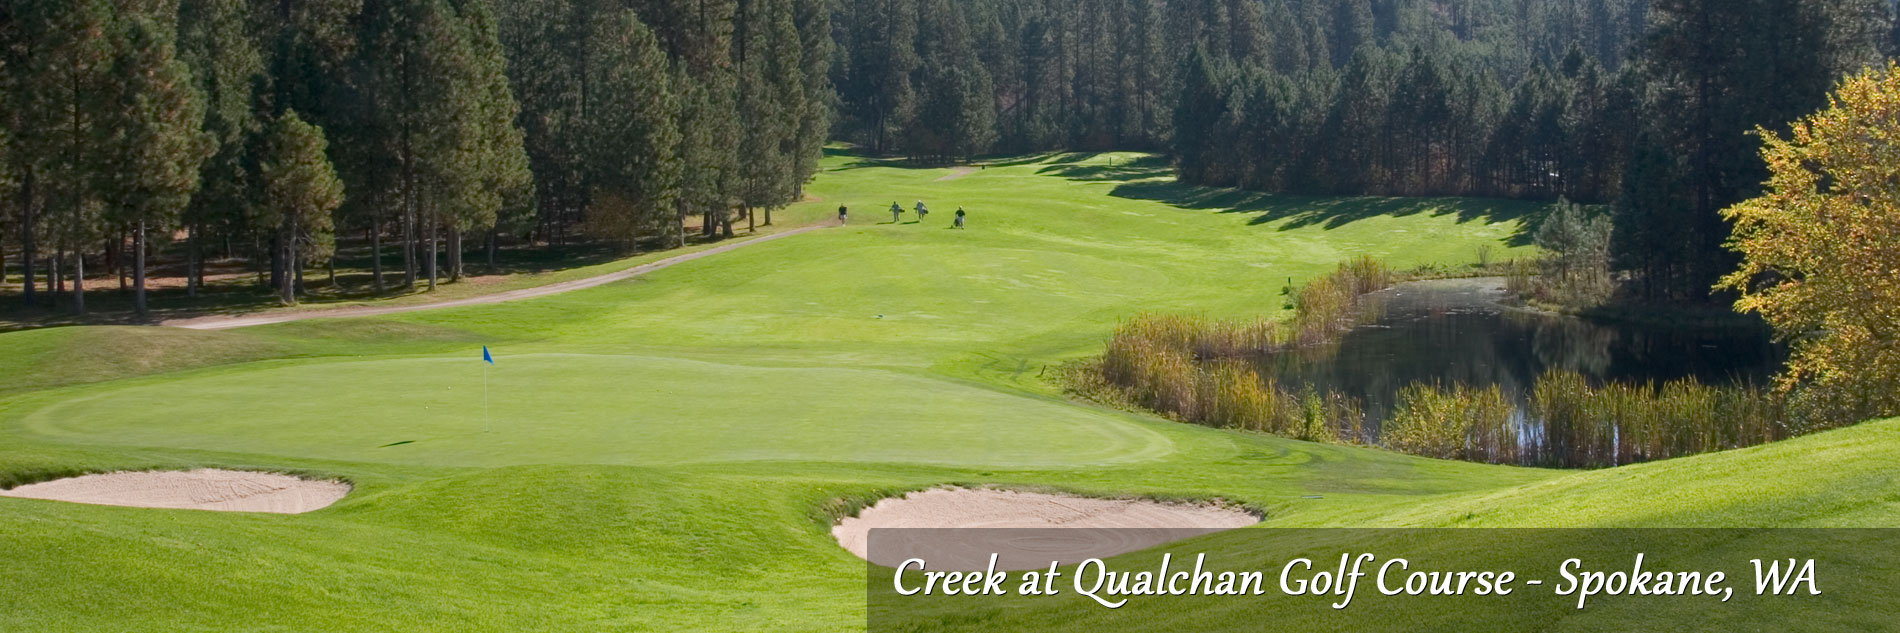 Creek at Qualchan Golf Course